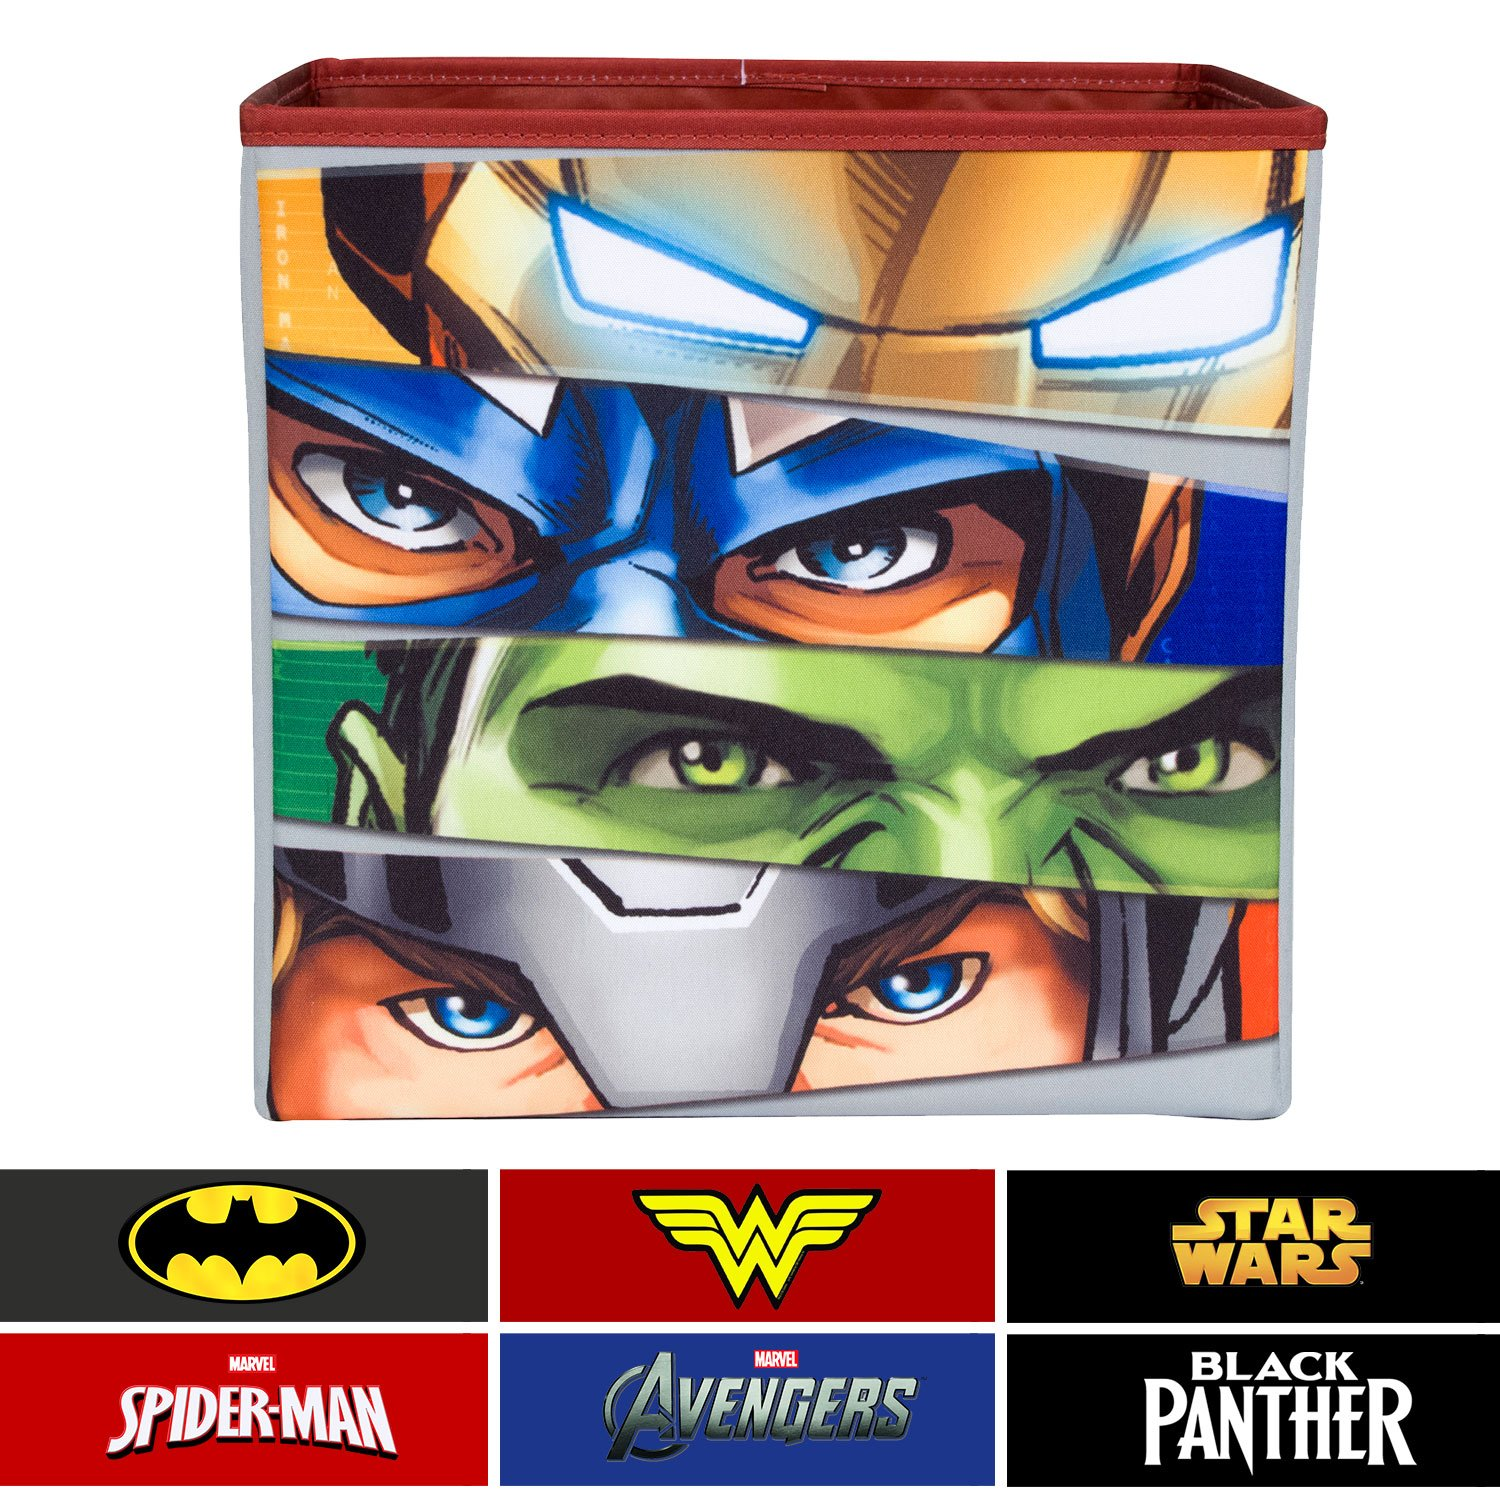 Everything Mary Avengers Collapsible Storage Bin by Marvel- Cube Organizer for Closet, Kids Bedroom Box, Playroom Chest - Foldable Home Decor Basket Container with Strong Handles and Design